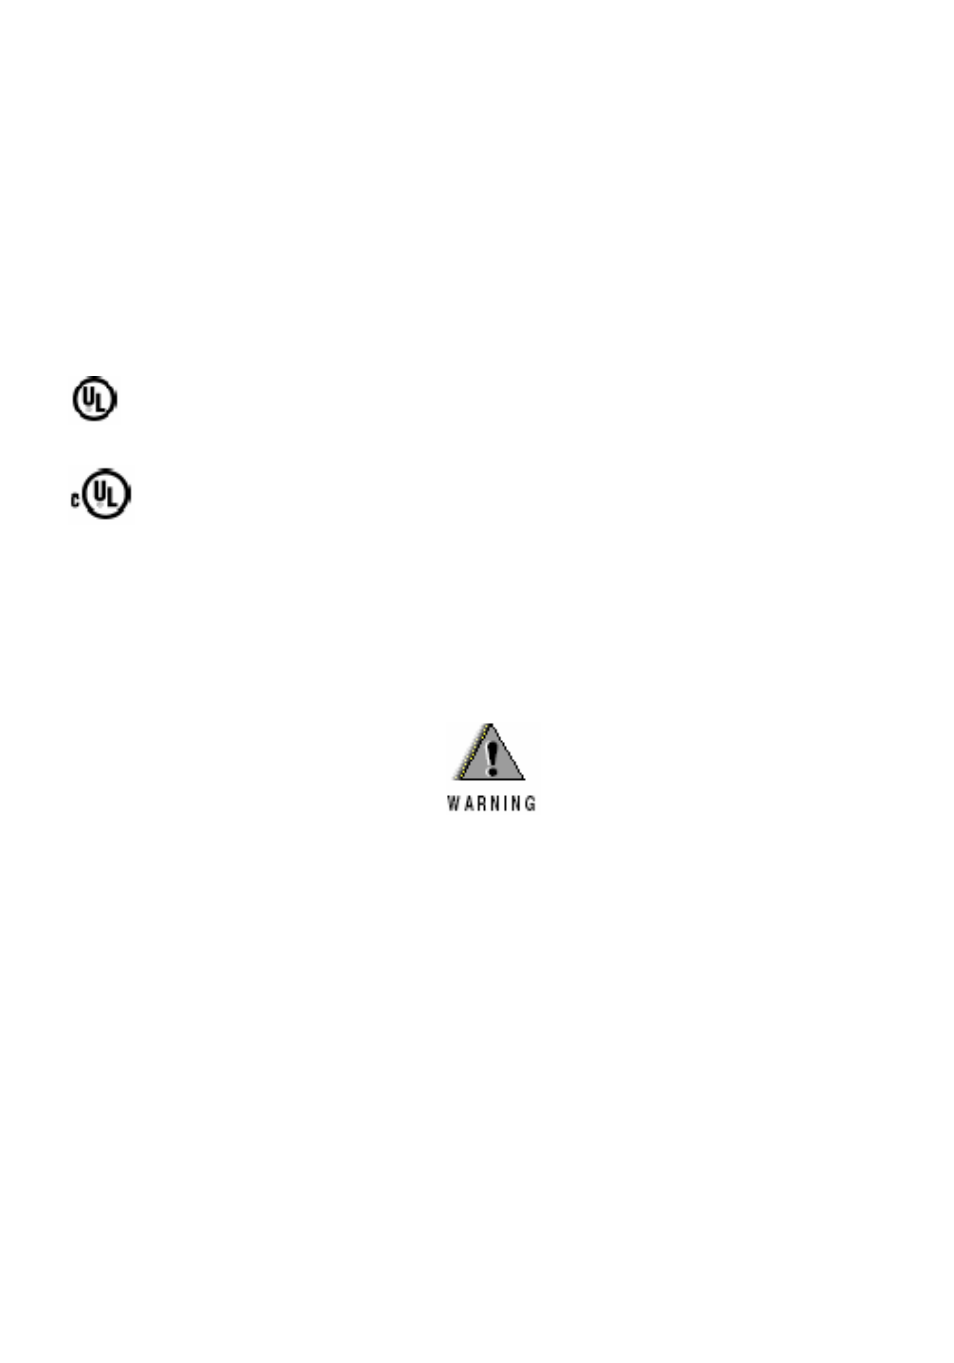 motorola minitor v user manual page 2 17 original mode rh manualsdir com Minitor V Accessories Minitor V Manual